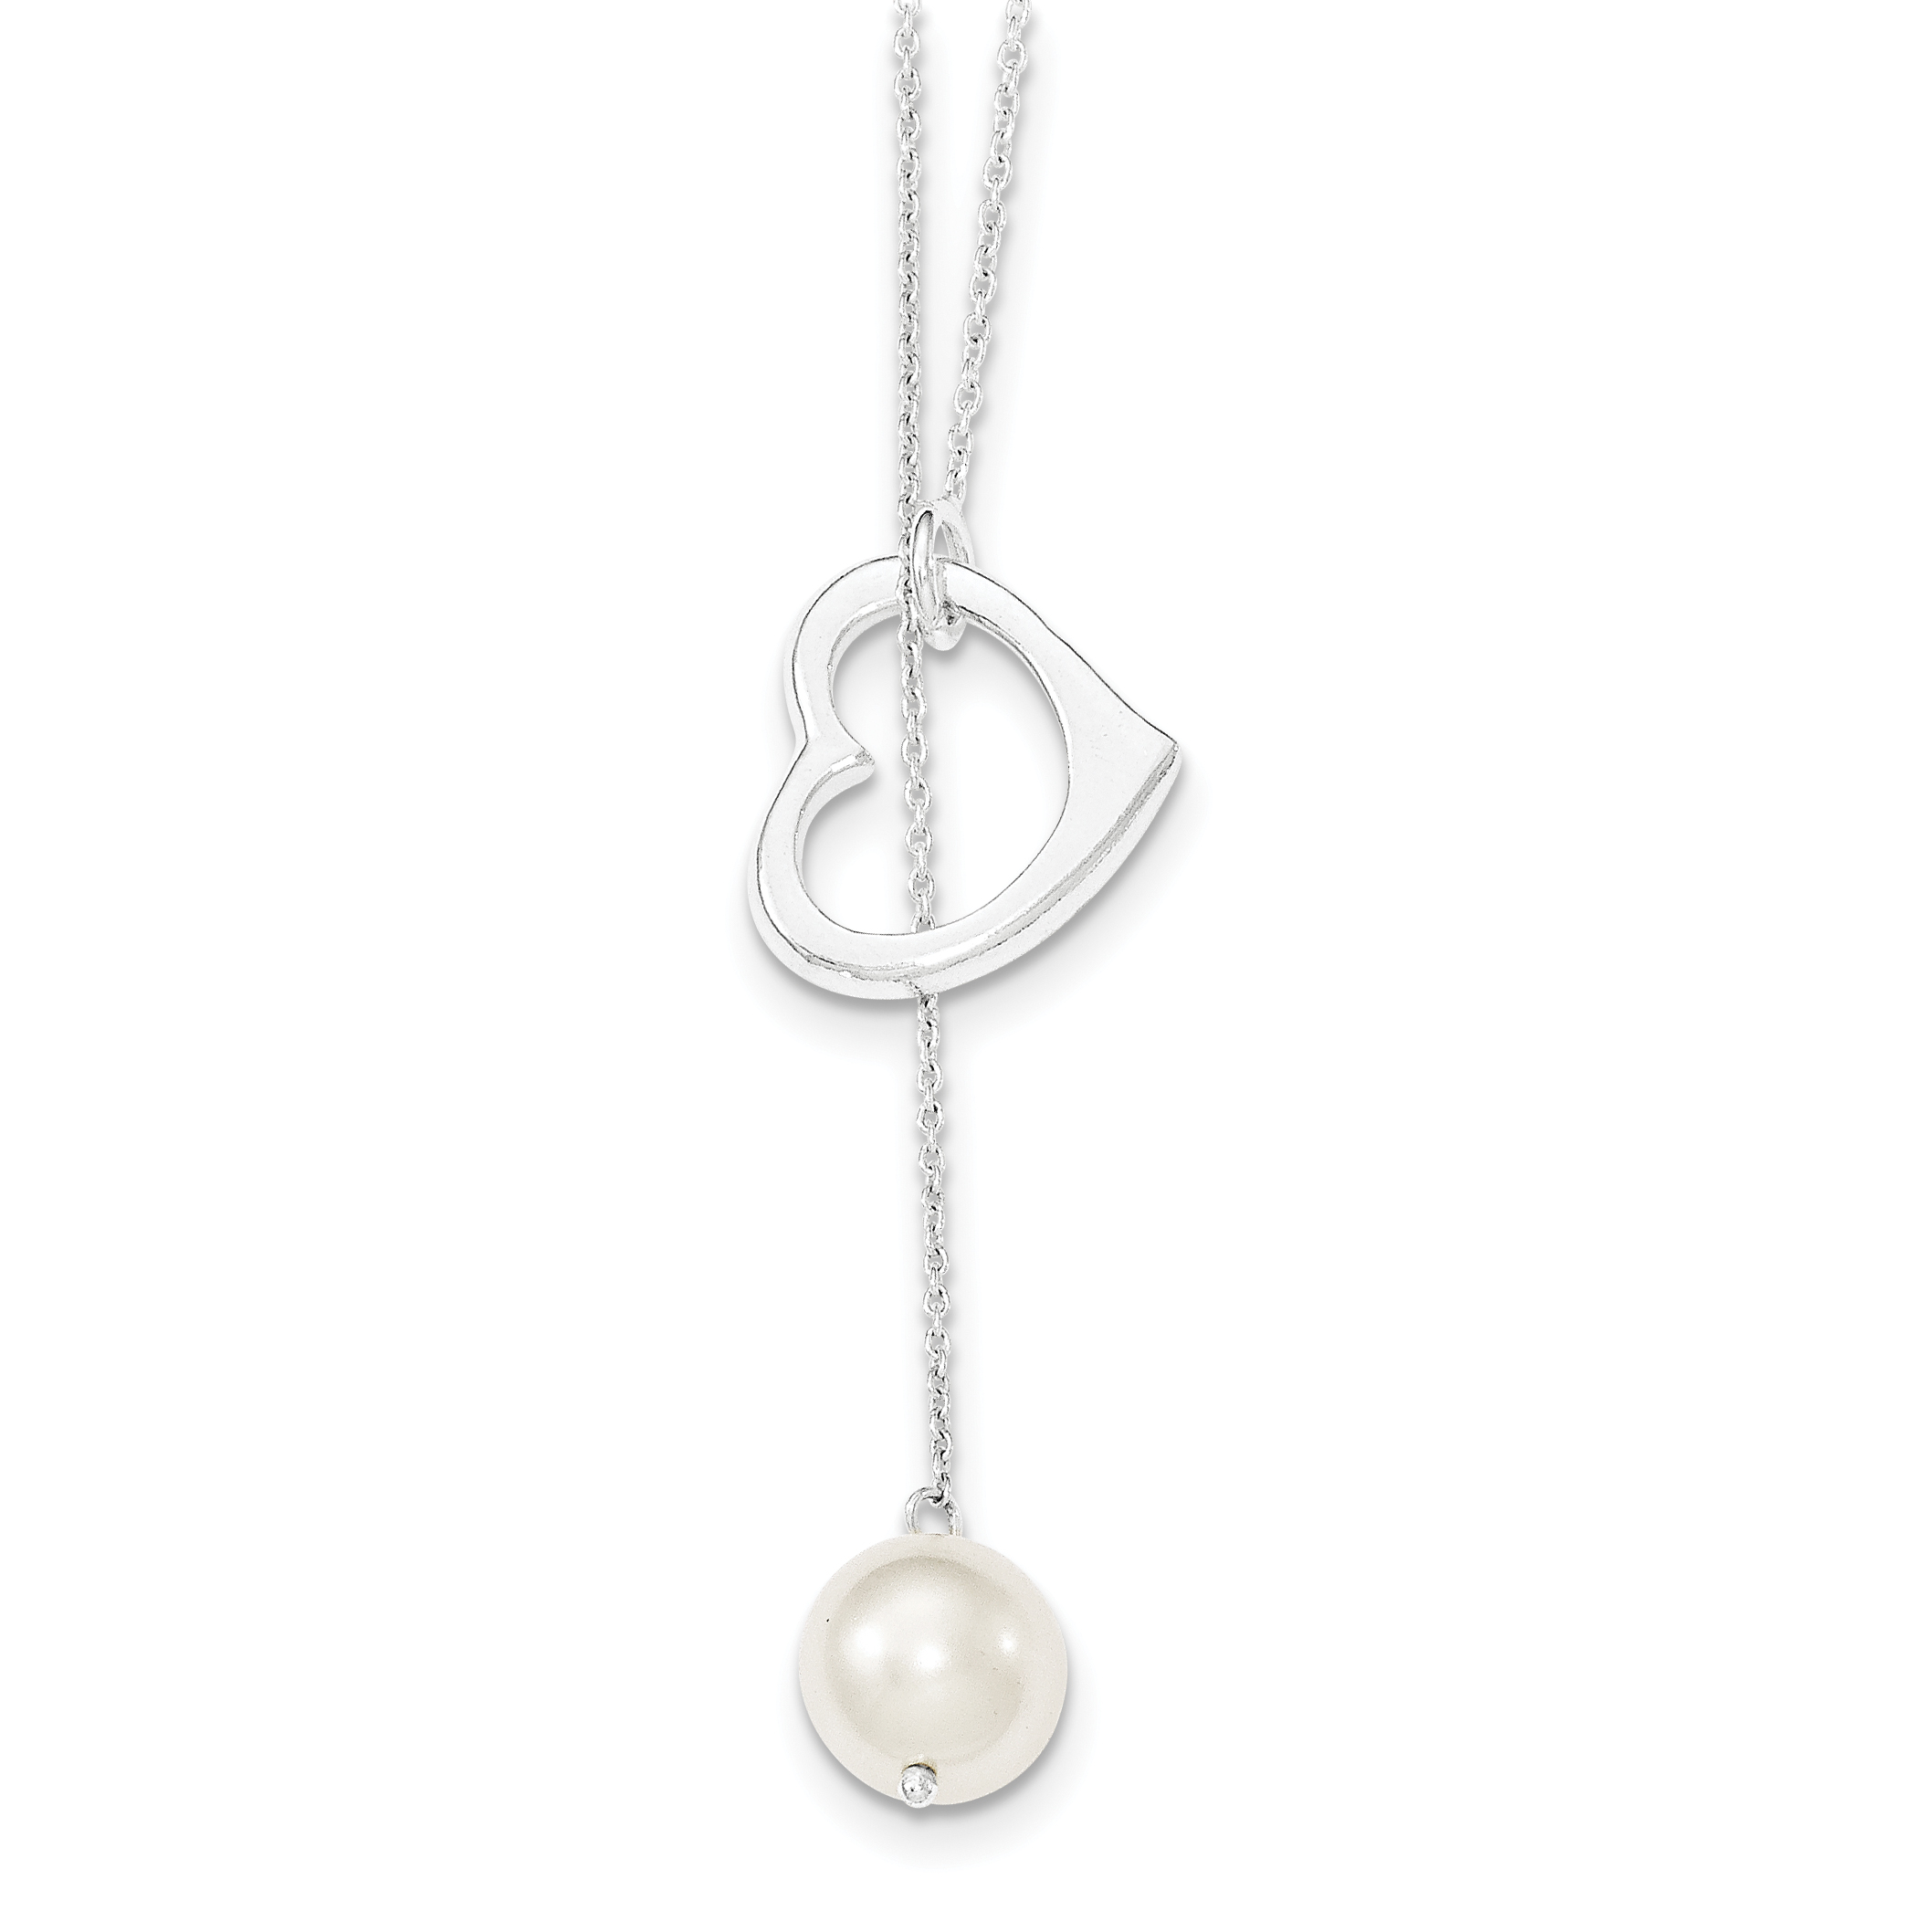 925 Sterling Silver and Simulated Pearl Polished Heart Necklace 18 Inch - image 3 de 3